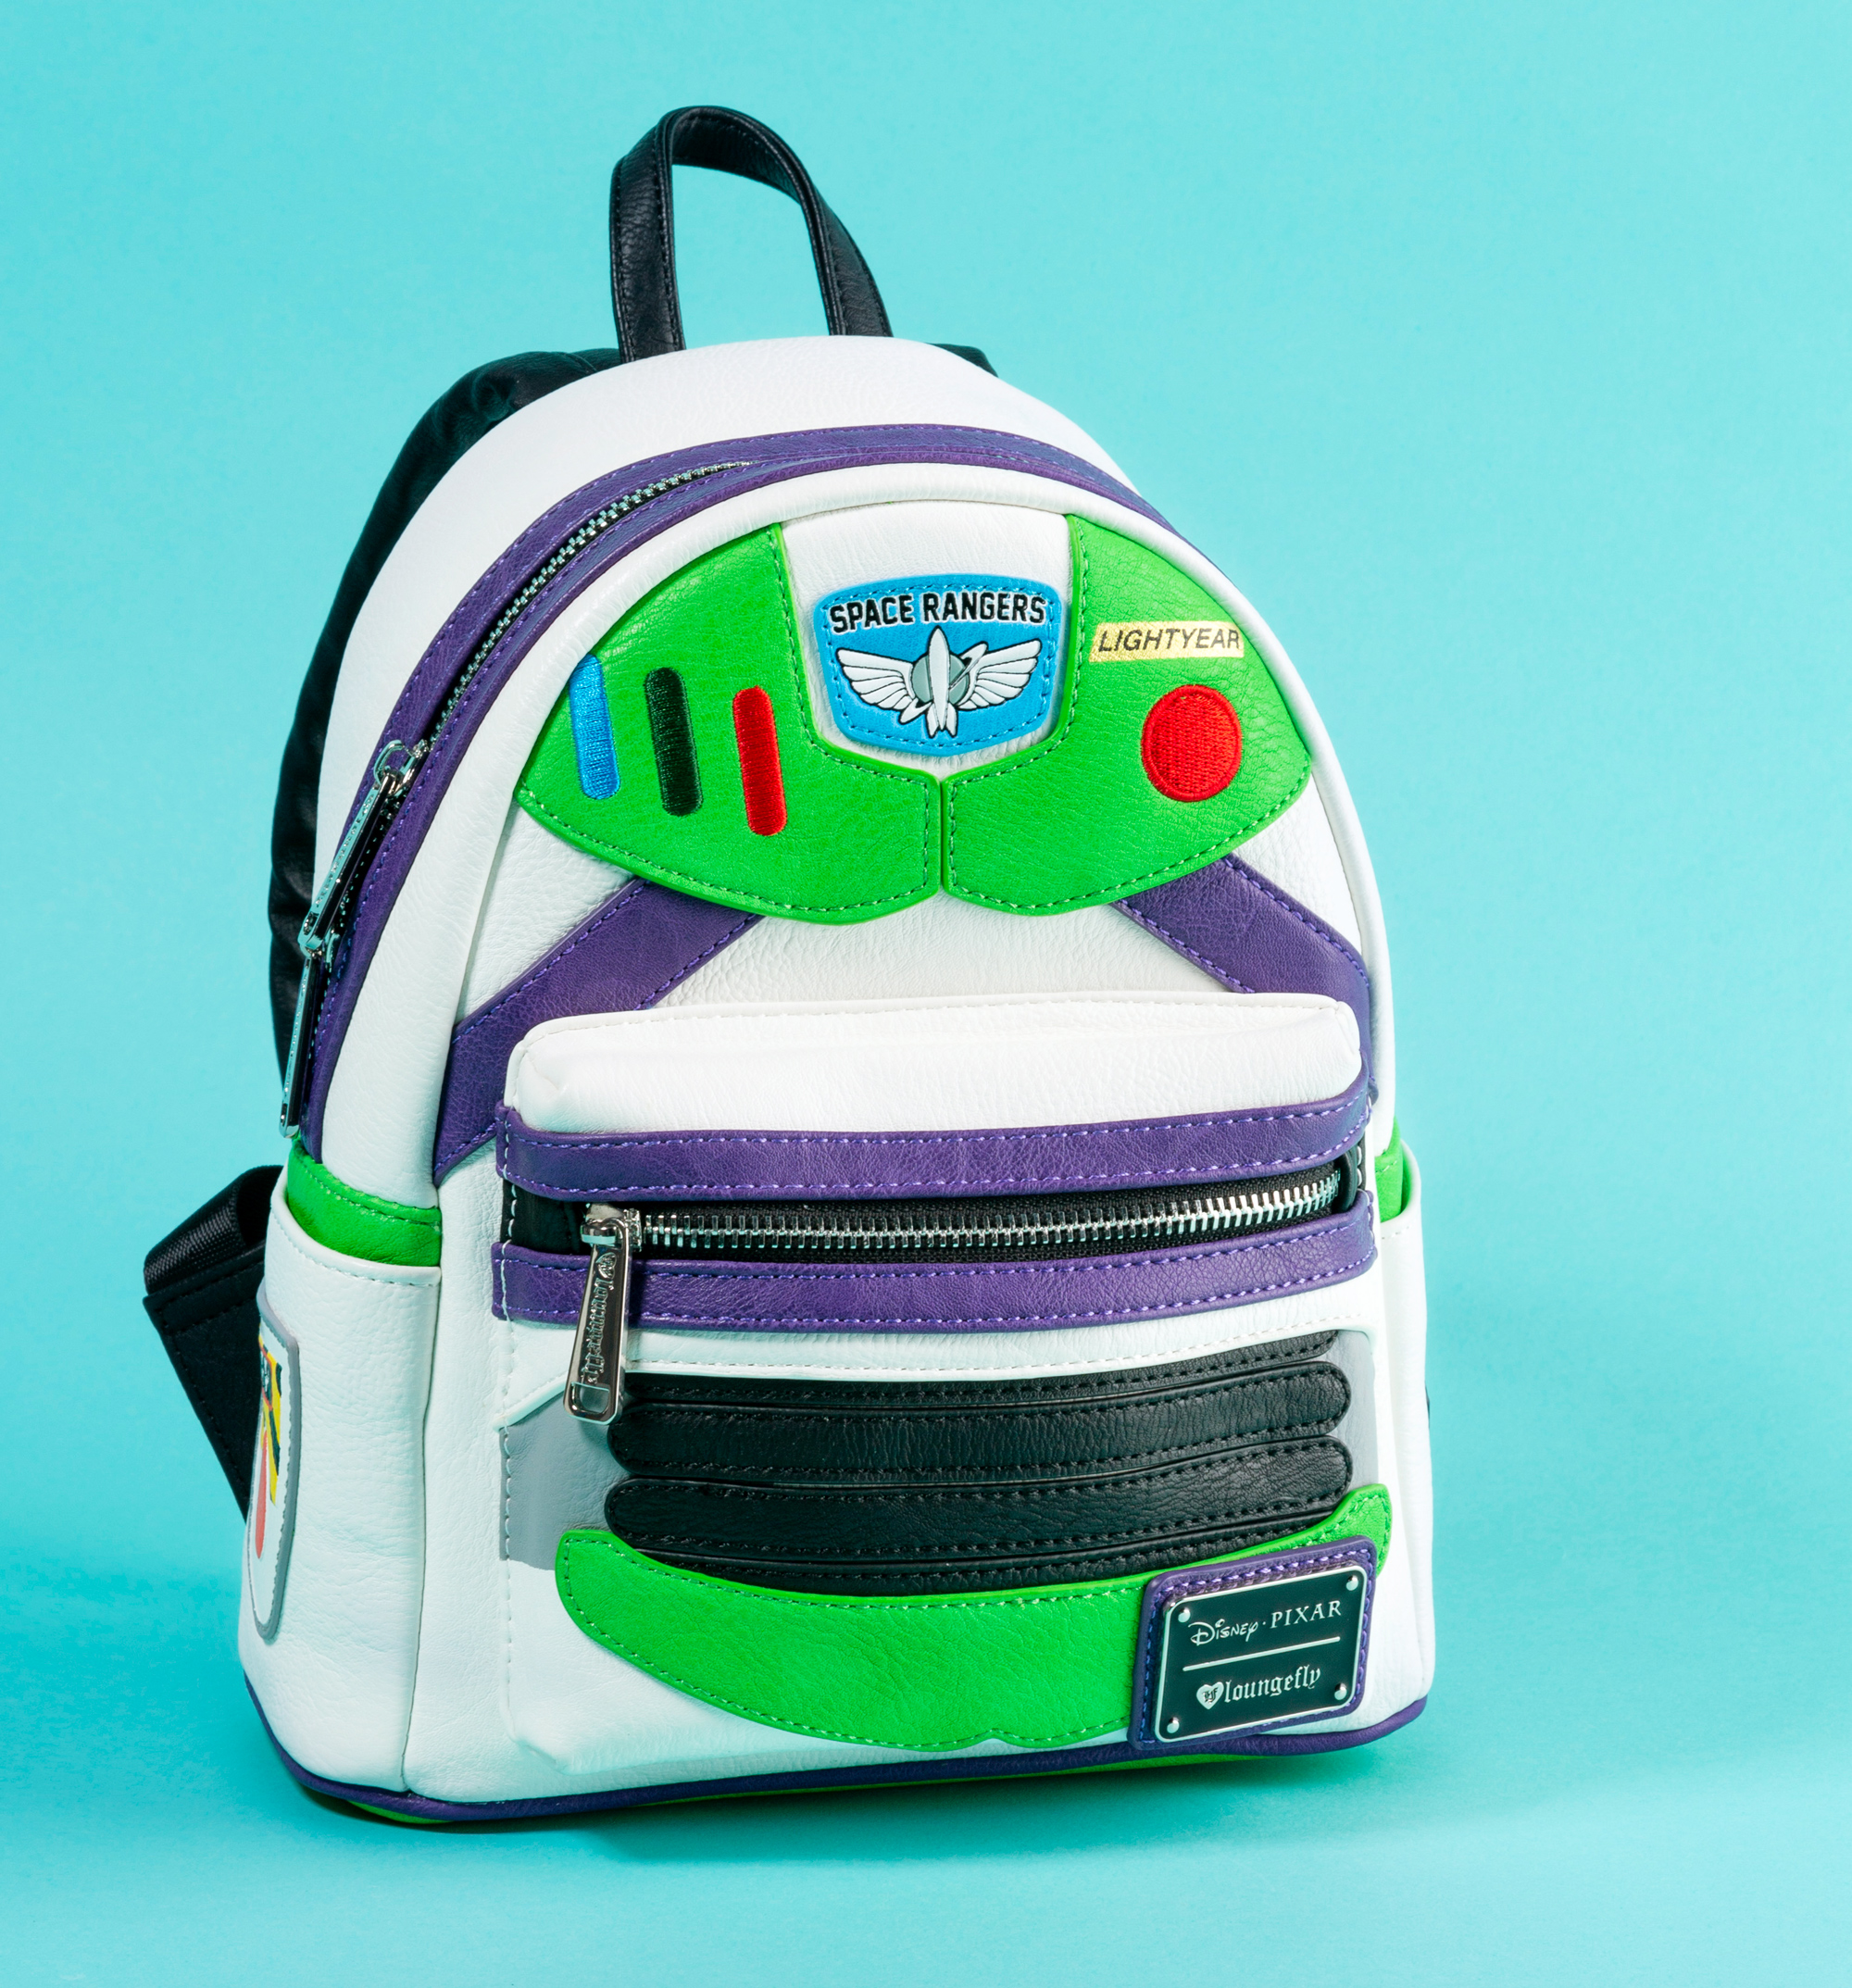 3f0ca4d80b Loungefly x Disney Buzz Lightyear Mini Backpack - Made of premium Saffiano  faux leather - Measures 27cm height